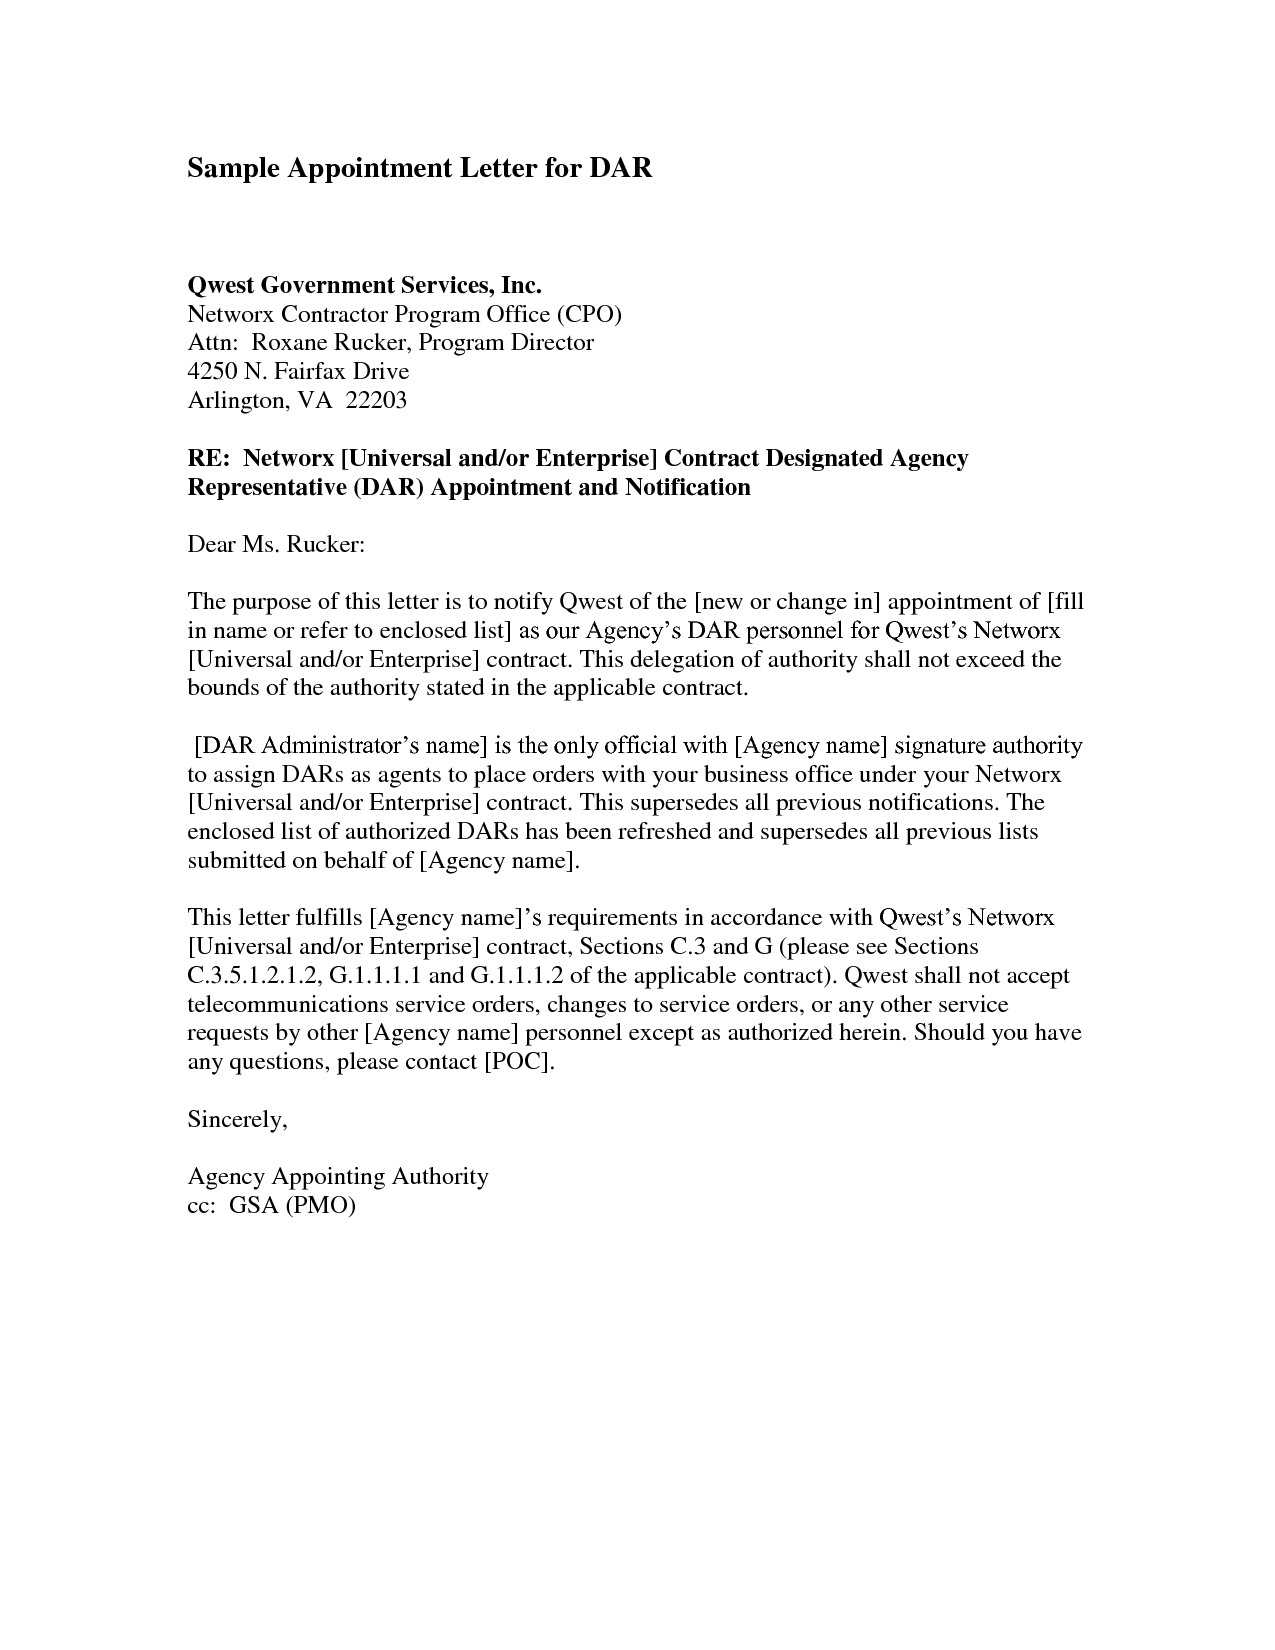 Real Estate Referral Letter Template - Trustee Appointment Letter Director Trustee is Appointed or